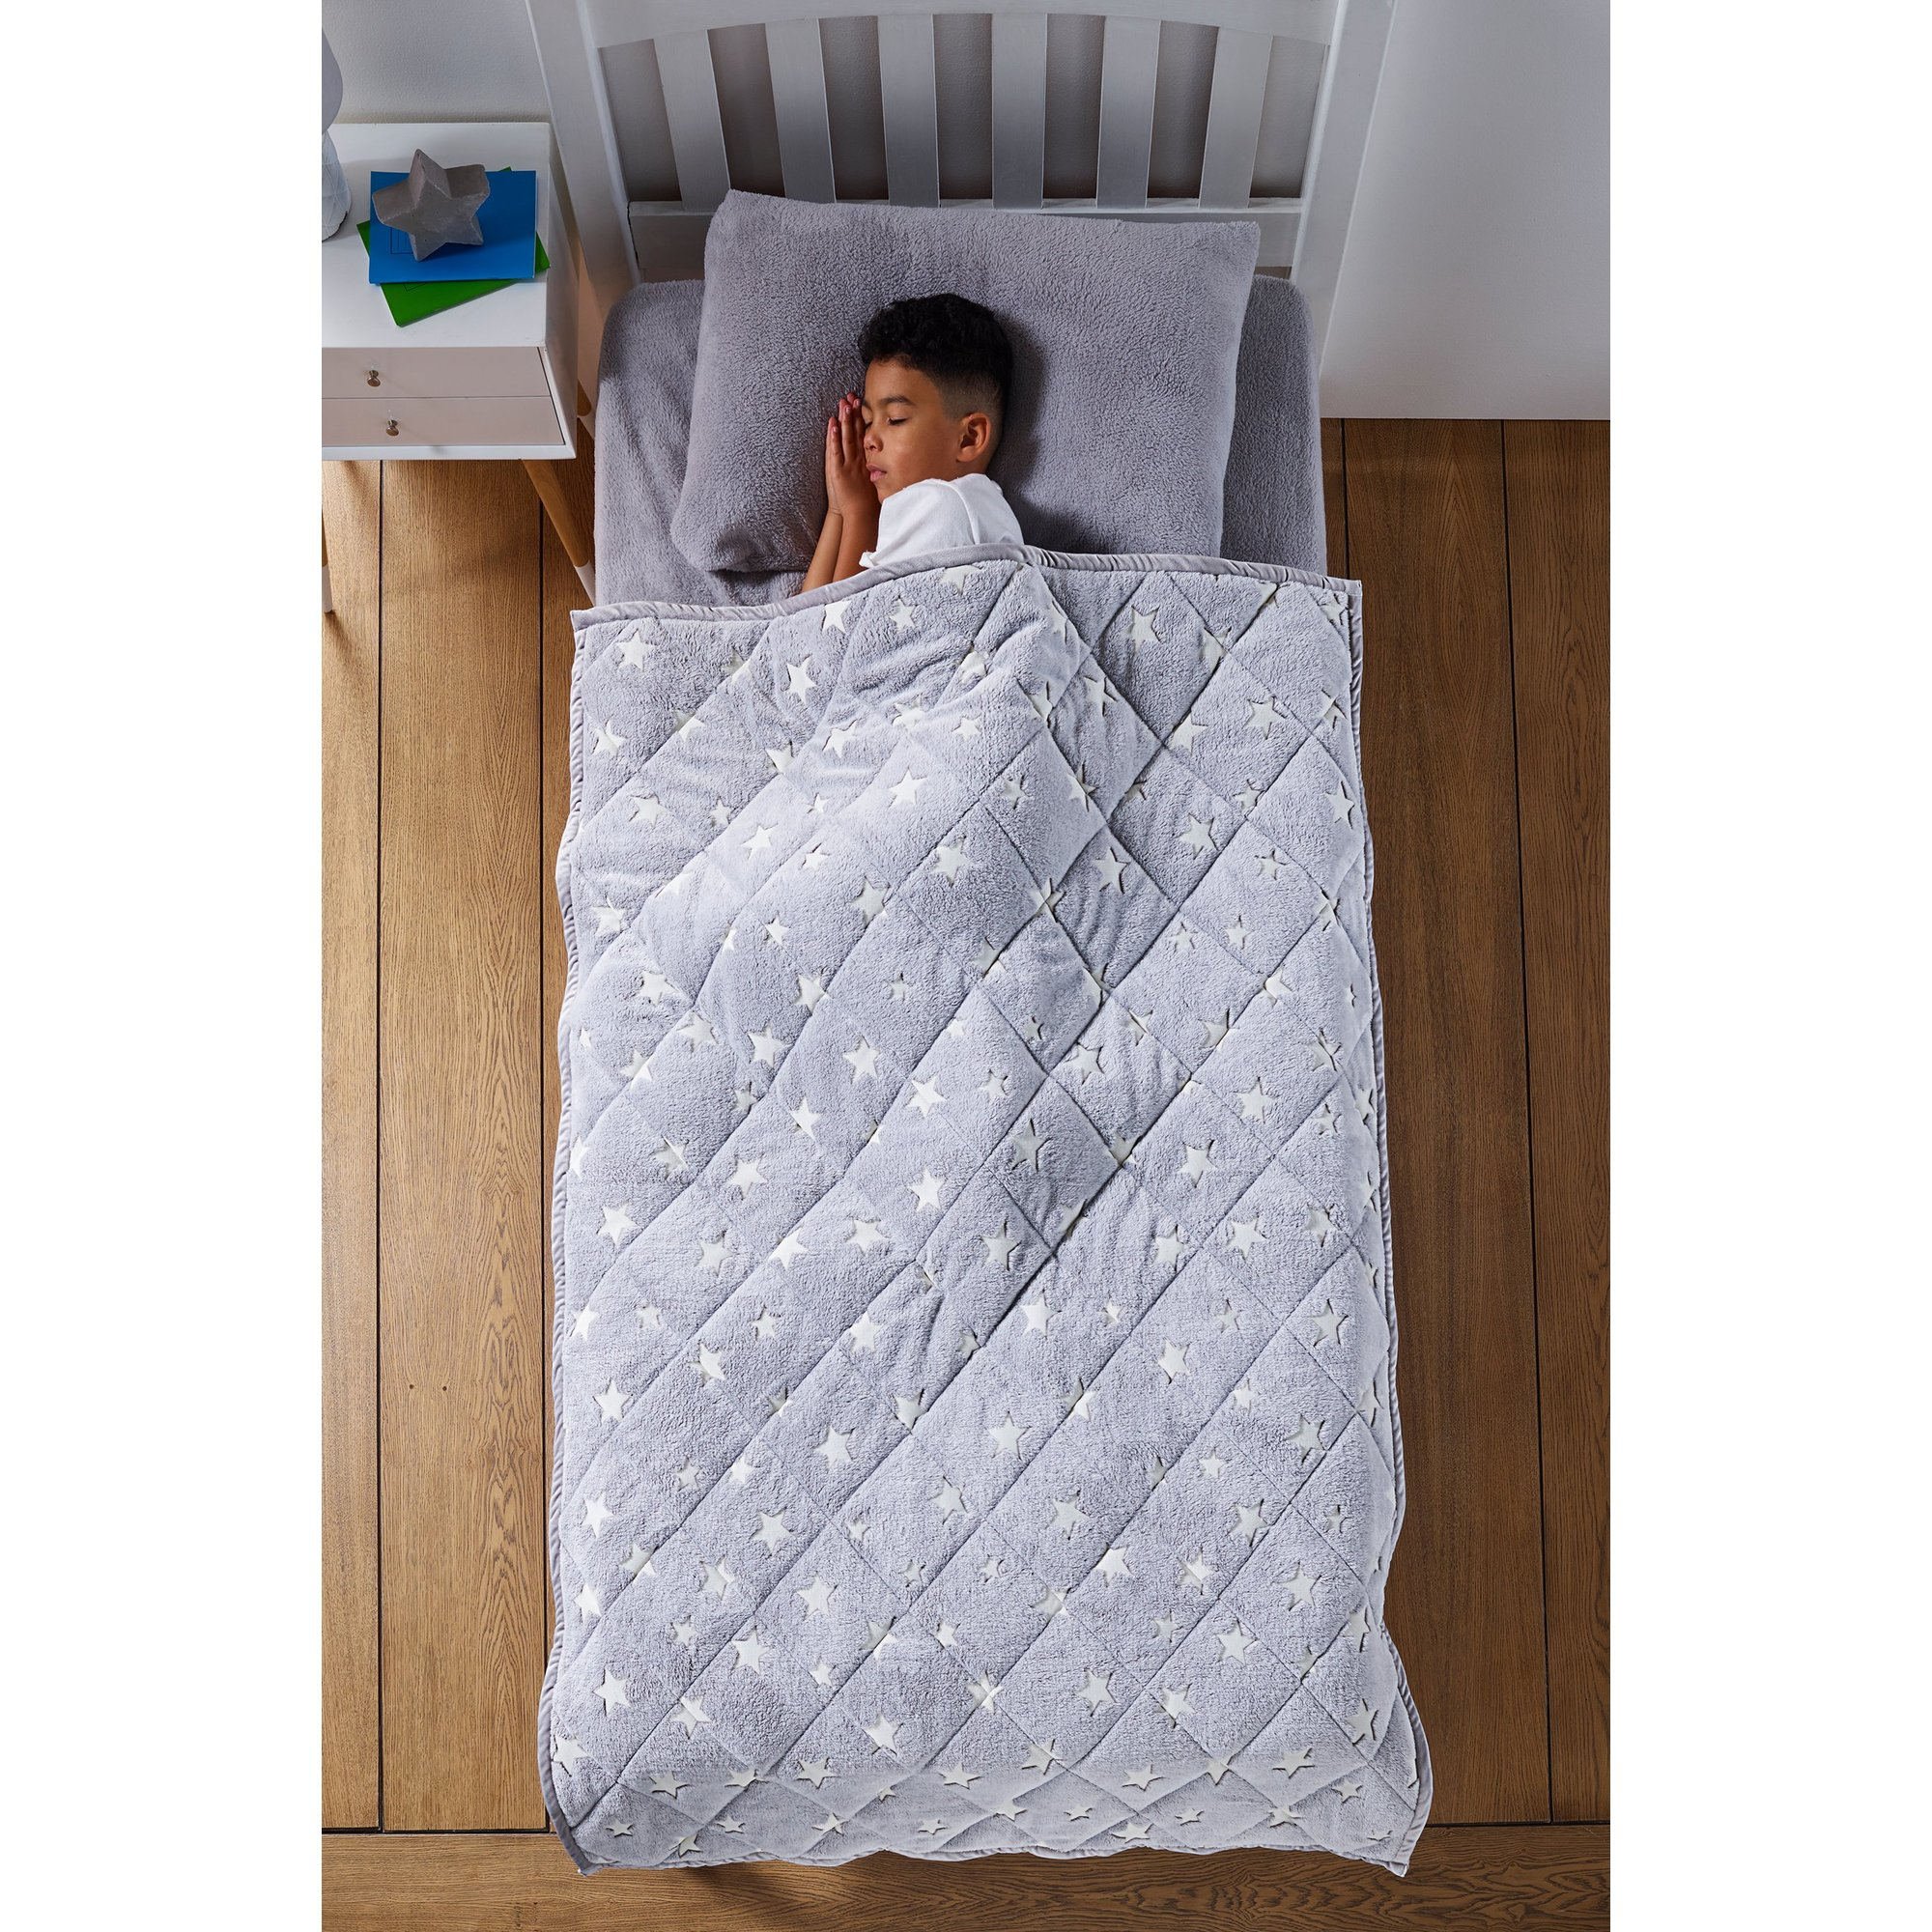 Image of Glow in the Dark Star 3kg Weighted Blanket